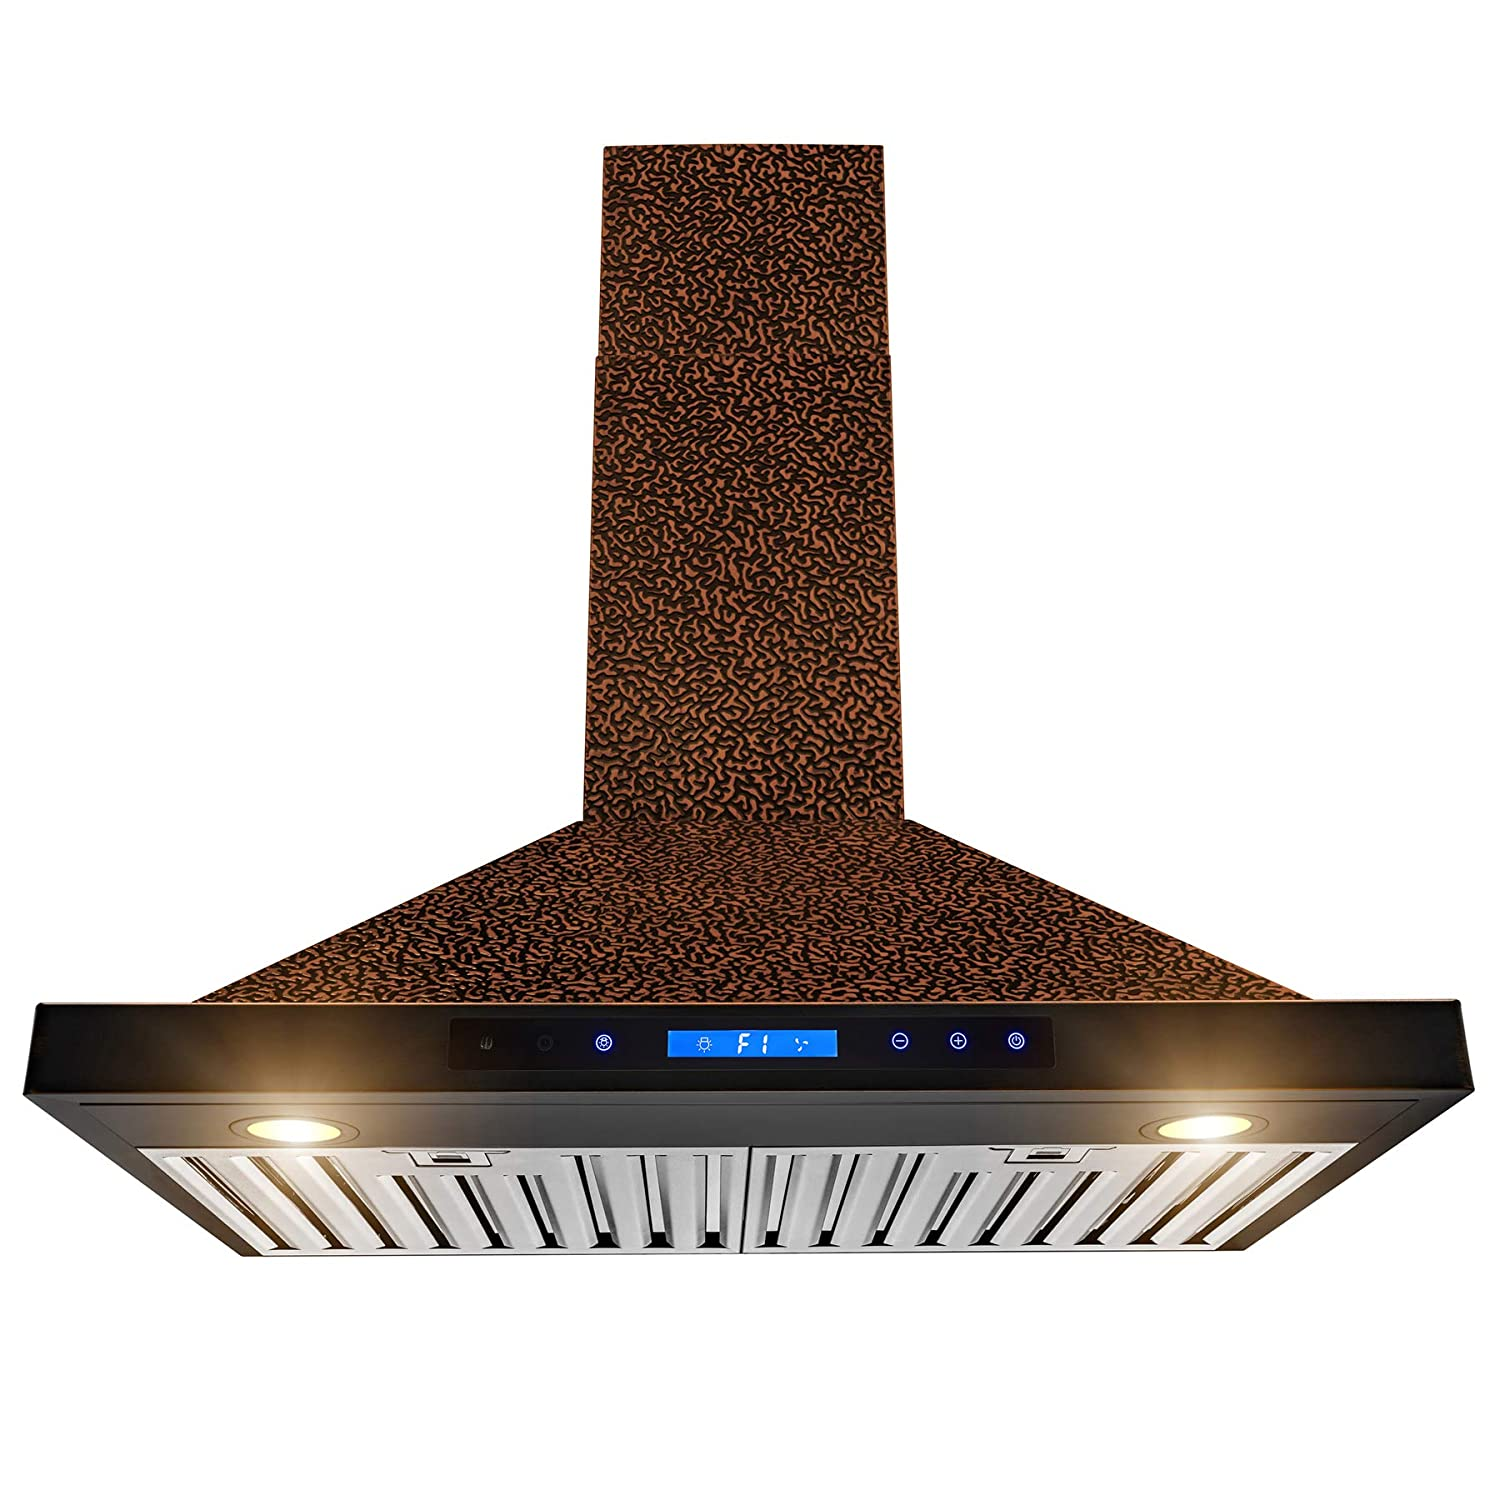 "AKDY Wall Mount Range Hood –30"" Embossed Copper Hood Fan for Kitchen – 4-Speed – Remote Control – Professional Quiet Motor – Touch Control Panel – Modern Design – Dishwasher-Safe Baffle Filters"